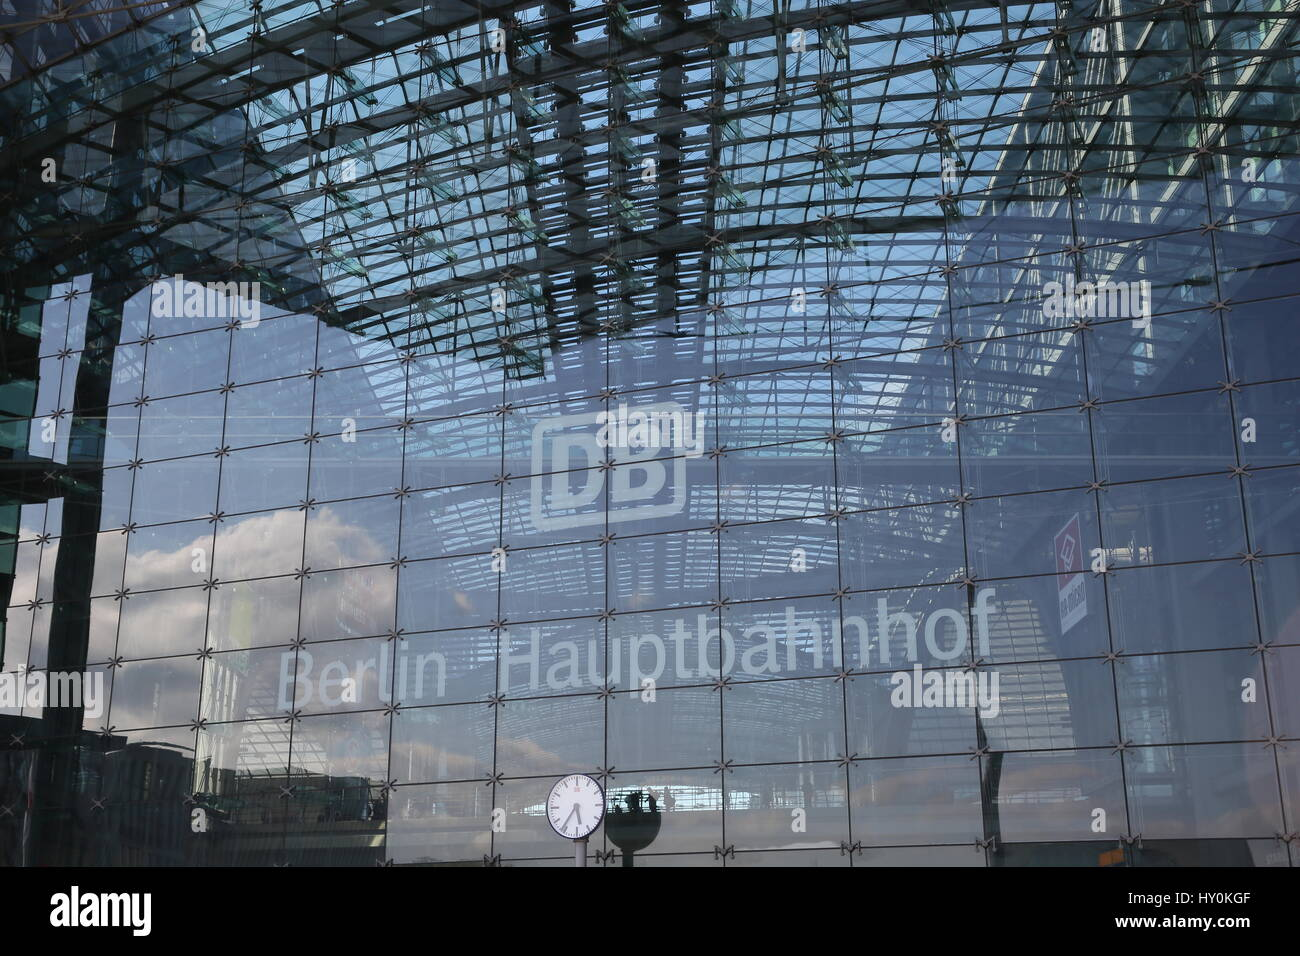 Berlin, Germany, May 7th, 2015: General strike of German train drivers (GdL) leaves the main train station empty - Stock Image